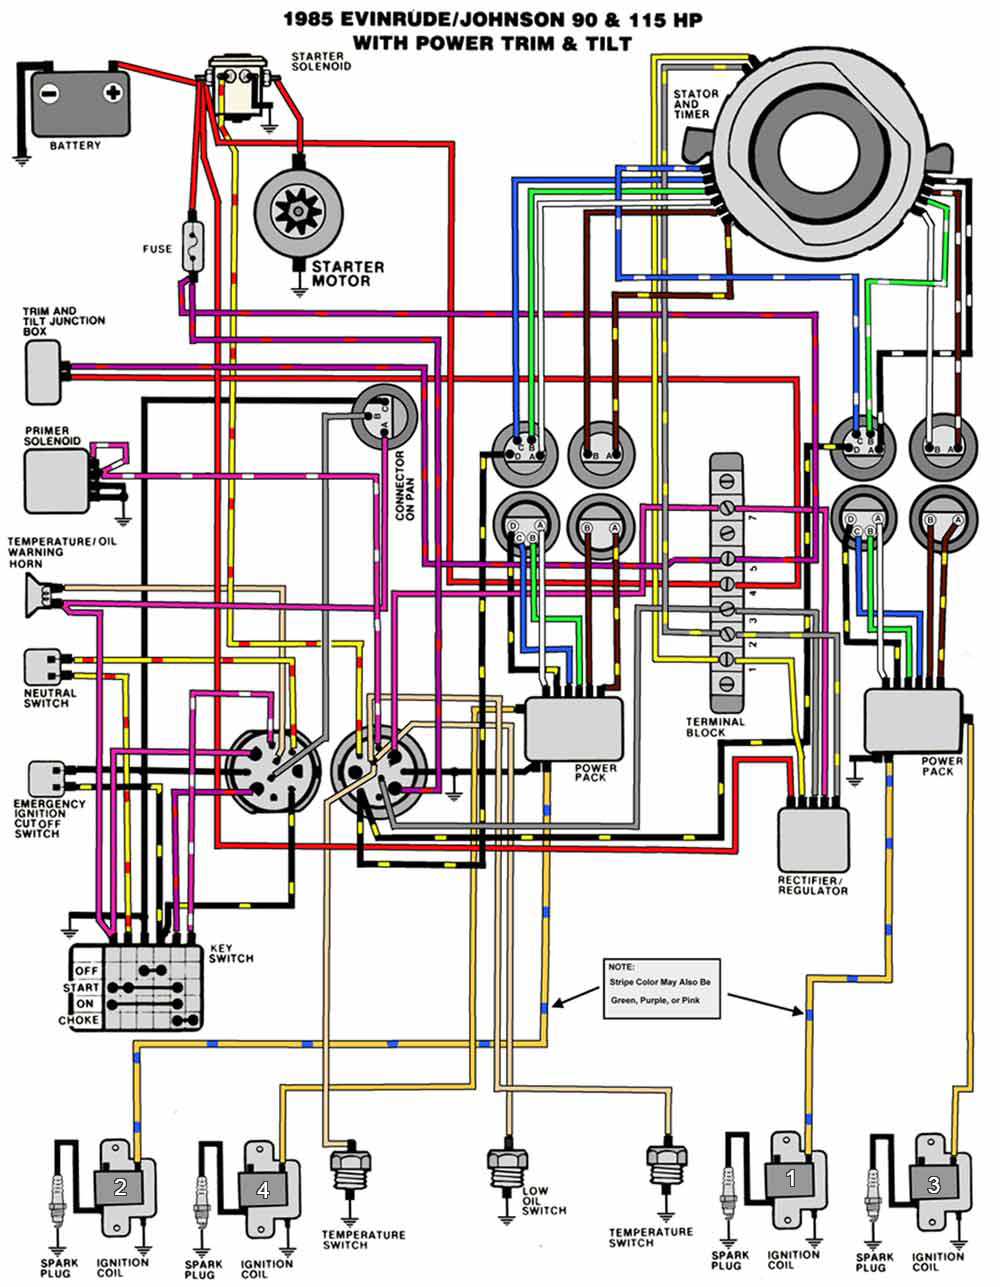 1985_90_115TnT mastertech marine evinrude johnson outboard wiring diagrams Boat Ignition Switch Wiring Diagram at creativeand.co